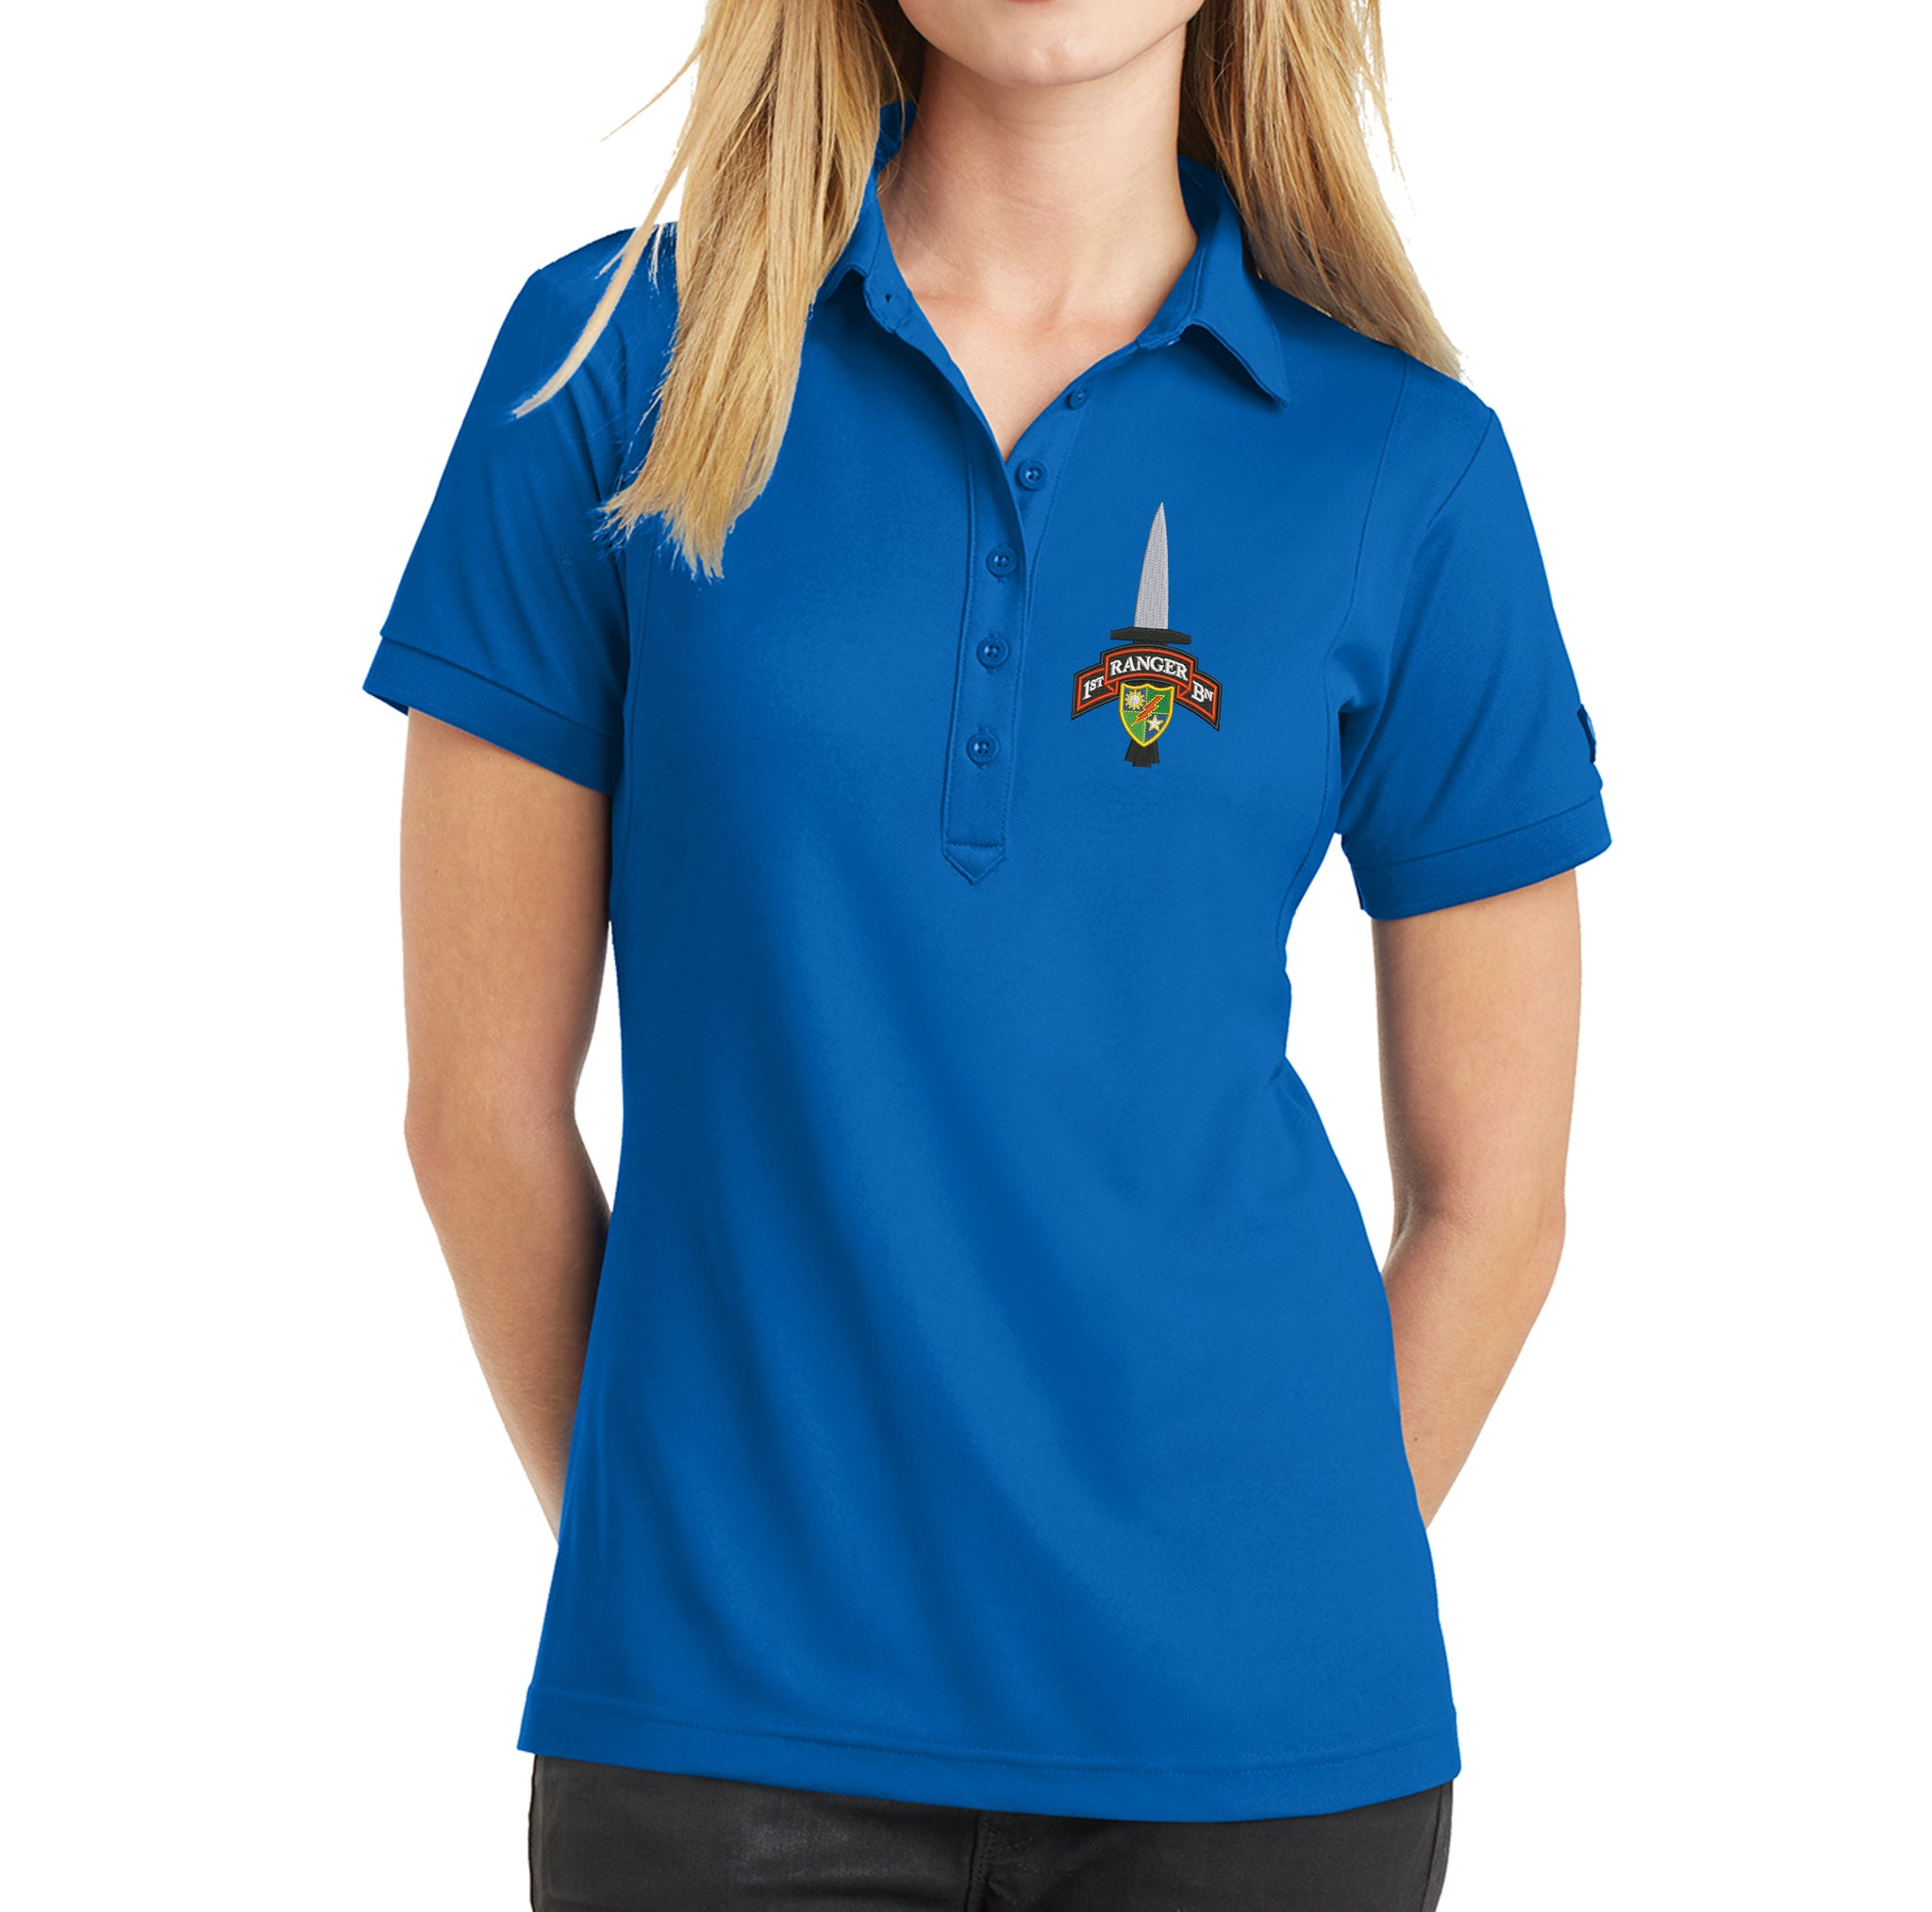 1st Batt SSF Dagger Ladies Polo